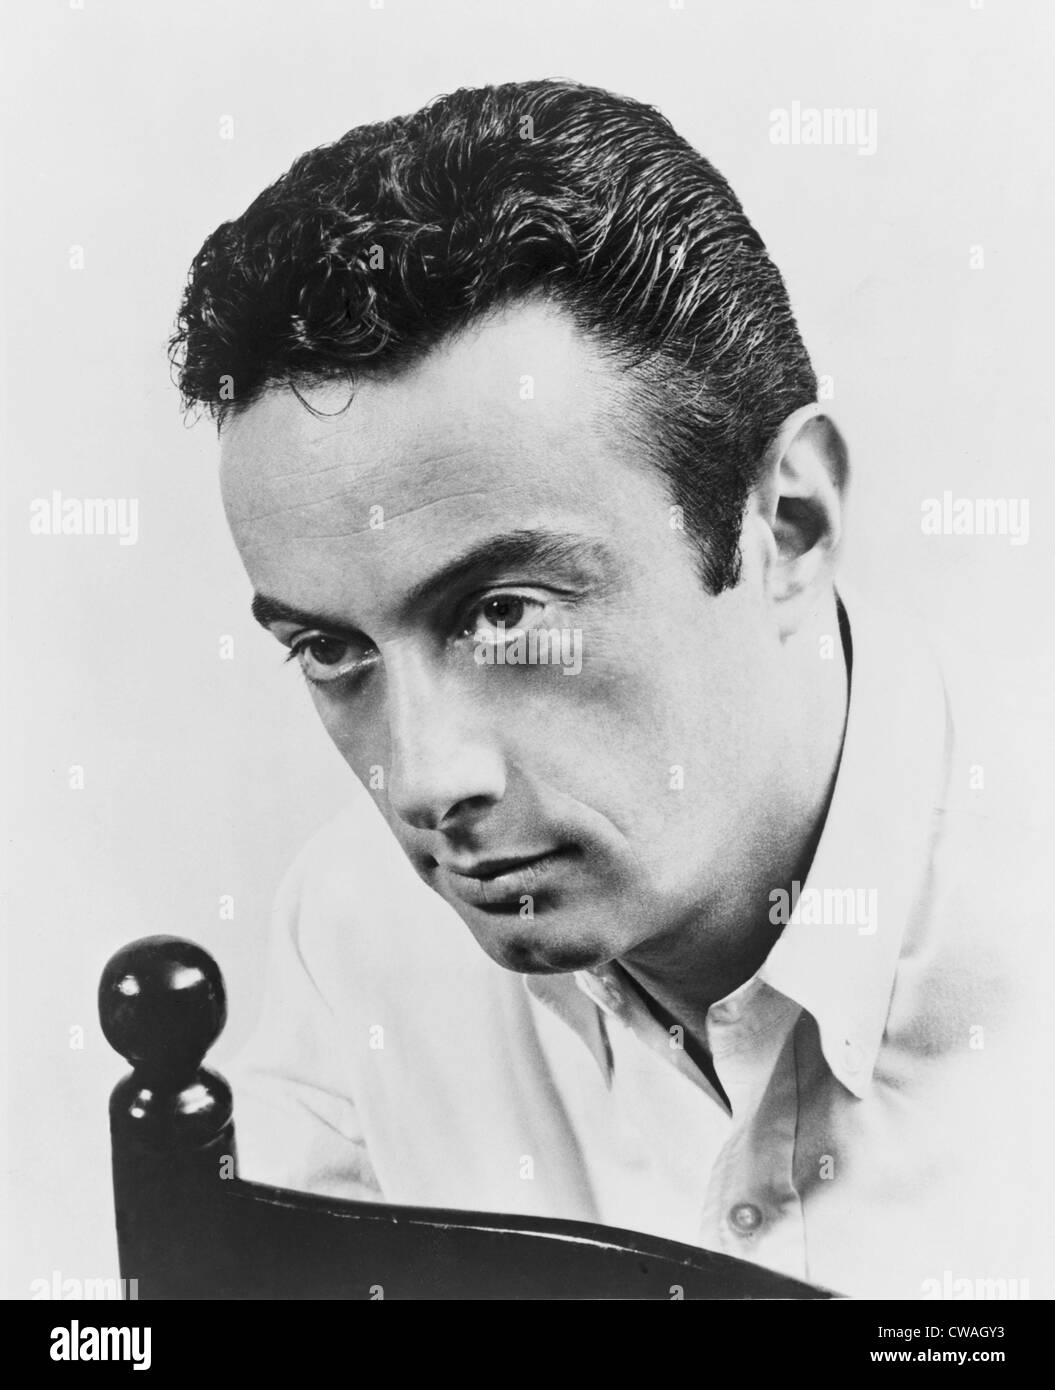 Lenny Bruce (1925-1966), controversial standup comedian who violated mid-century morality with his racy routines. - Stock Image